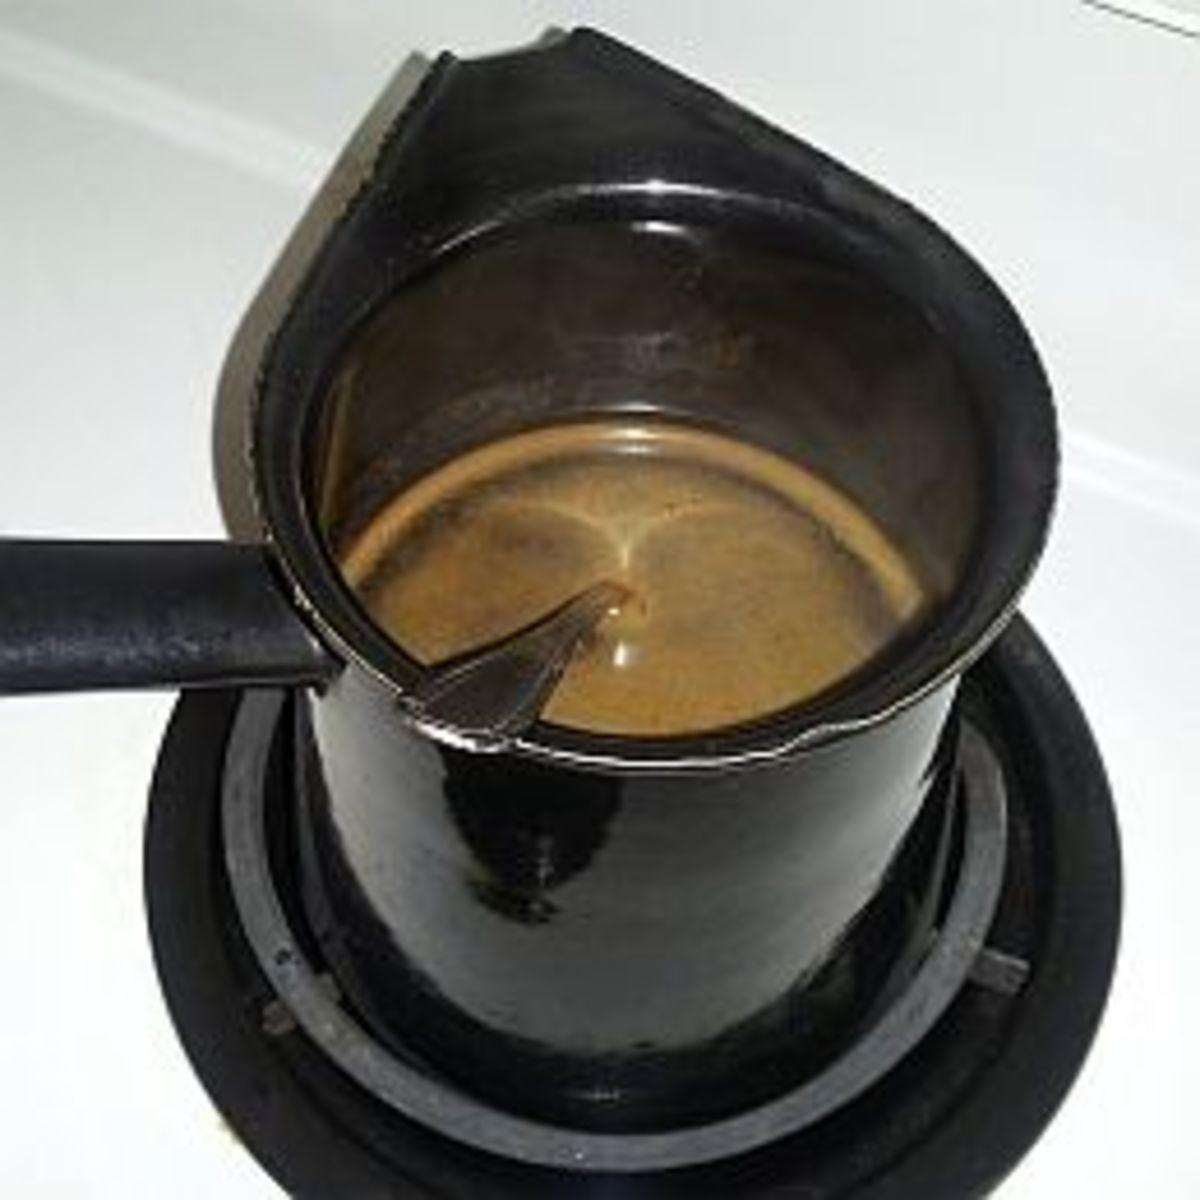 Coffee Ibrik on the Stove - Credit Dorian Bodnariuc